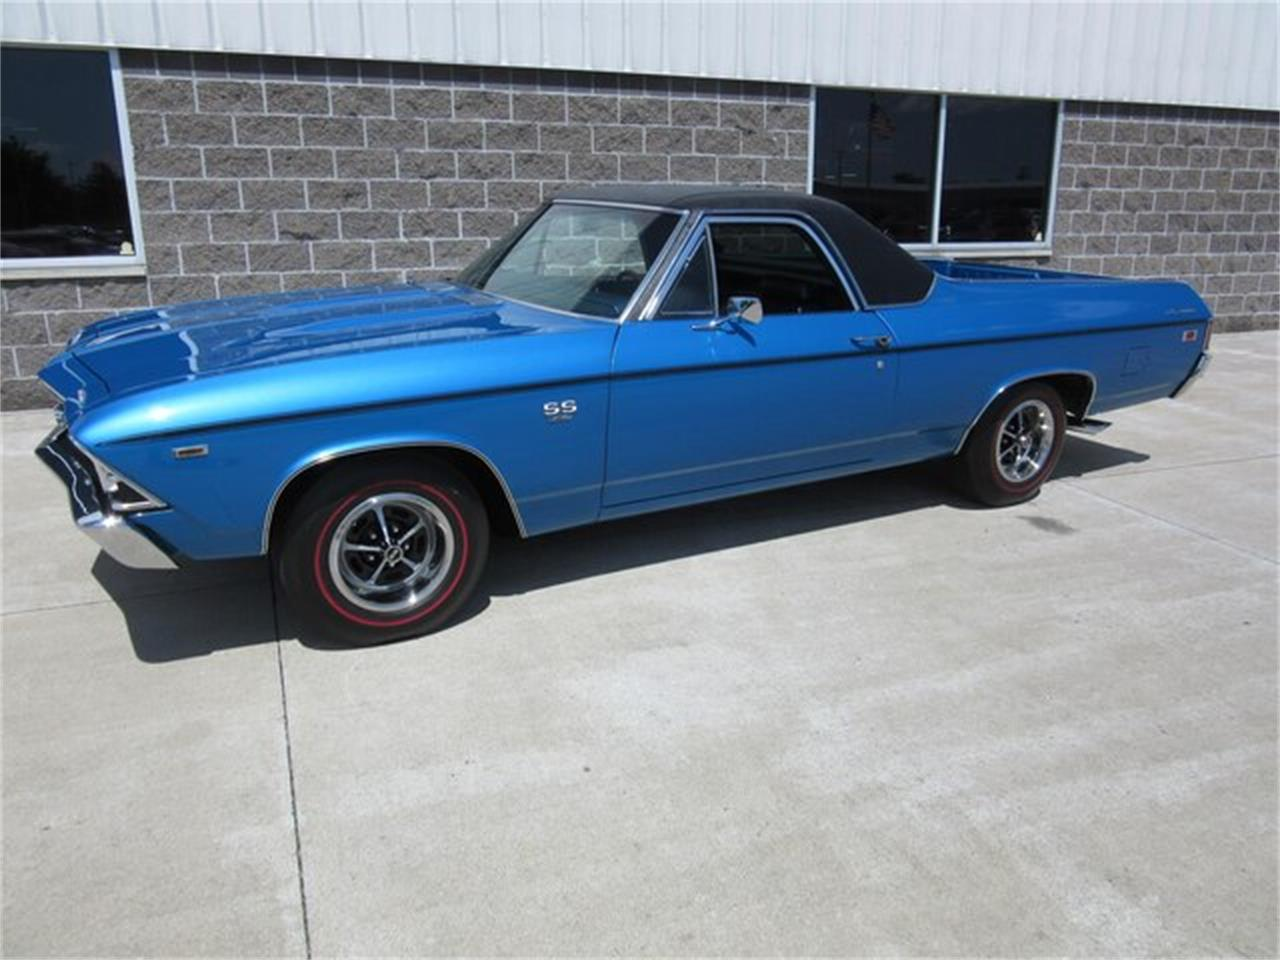 Large Picture of Classic '69 El Camino located in Greenwood Indiana - $38,500.00 - QTRB